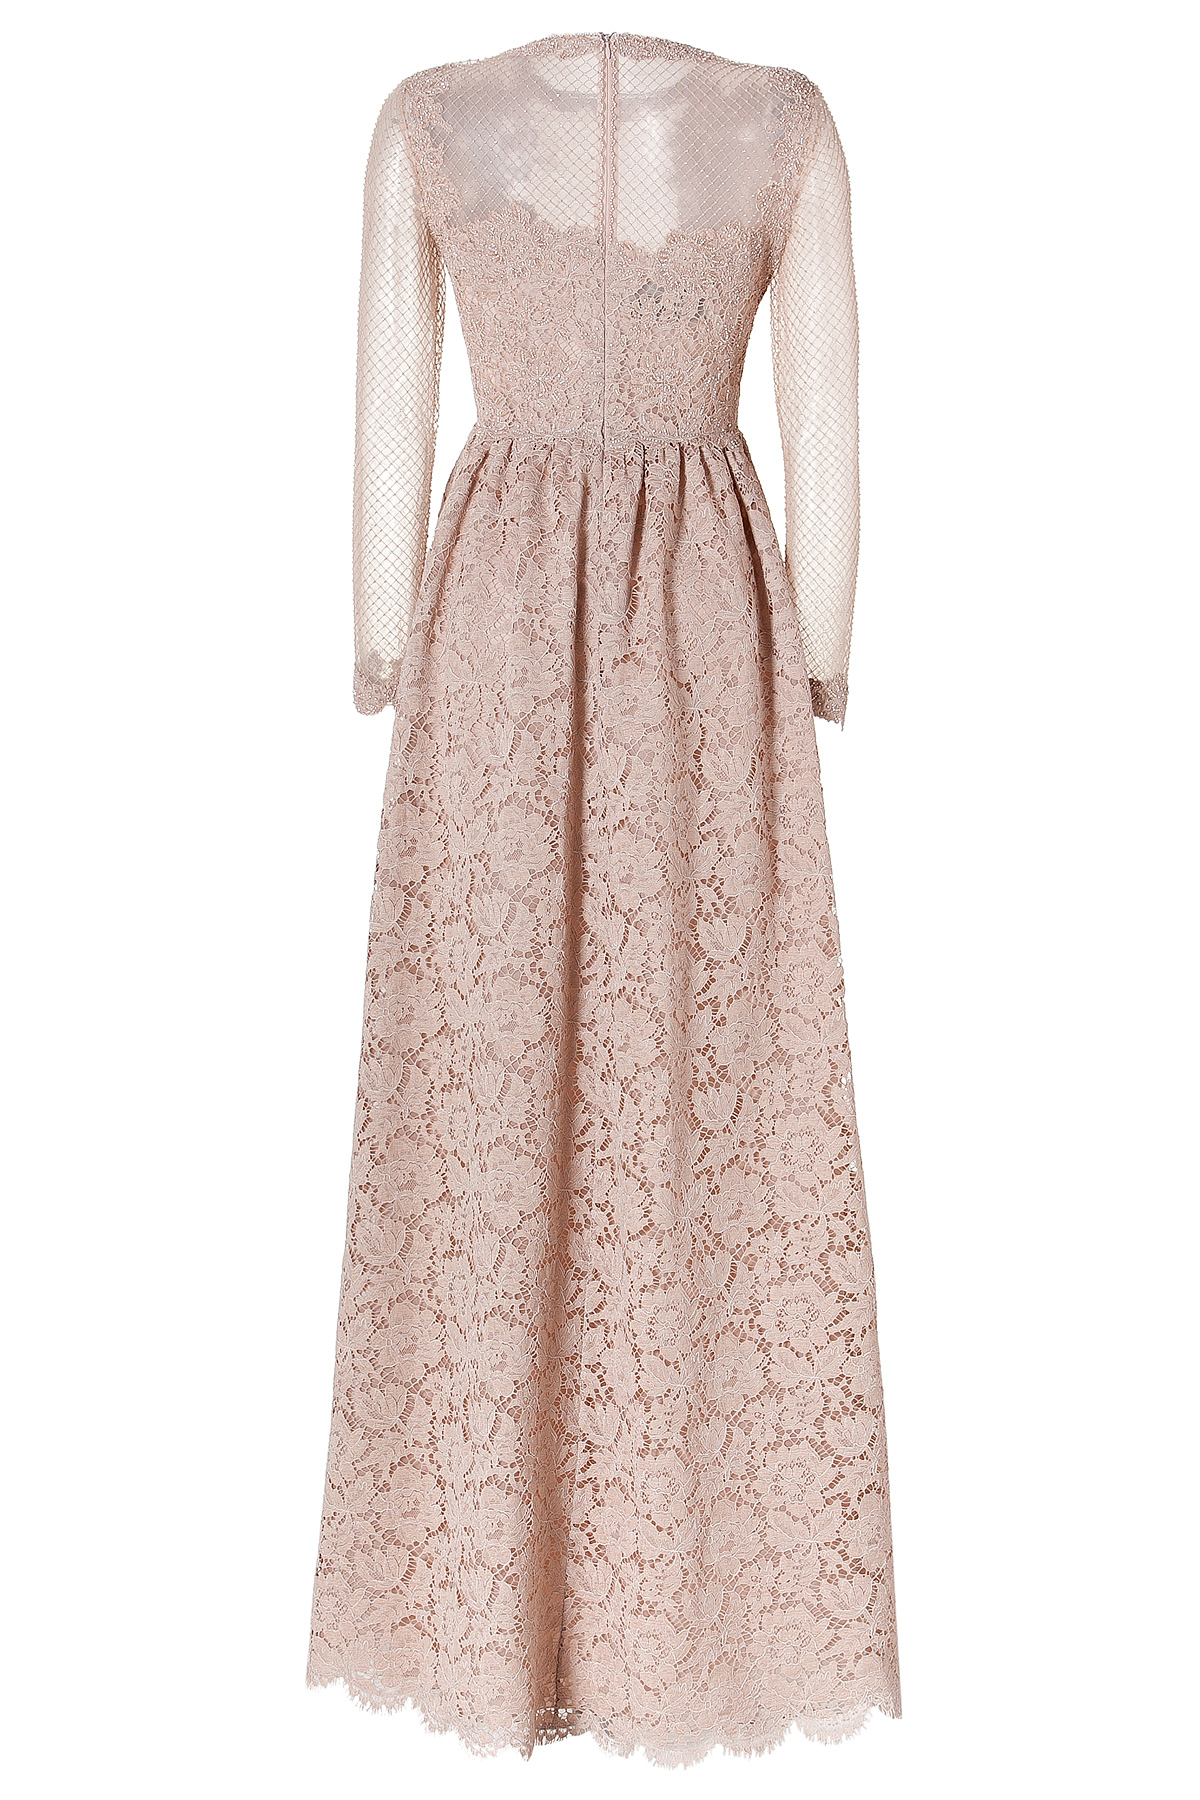 Lyst - Valentino Embellished Lace Evening Gown with Netted Long ...